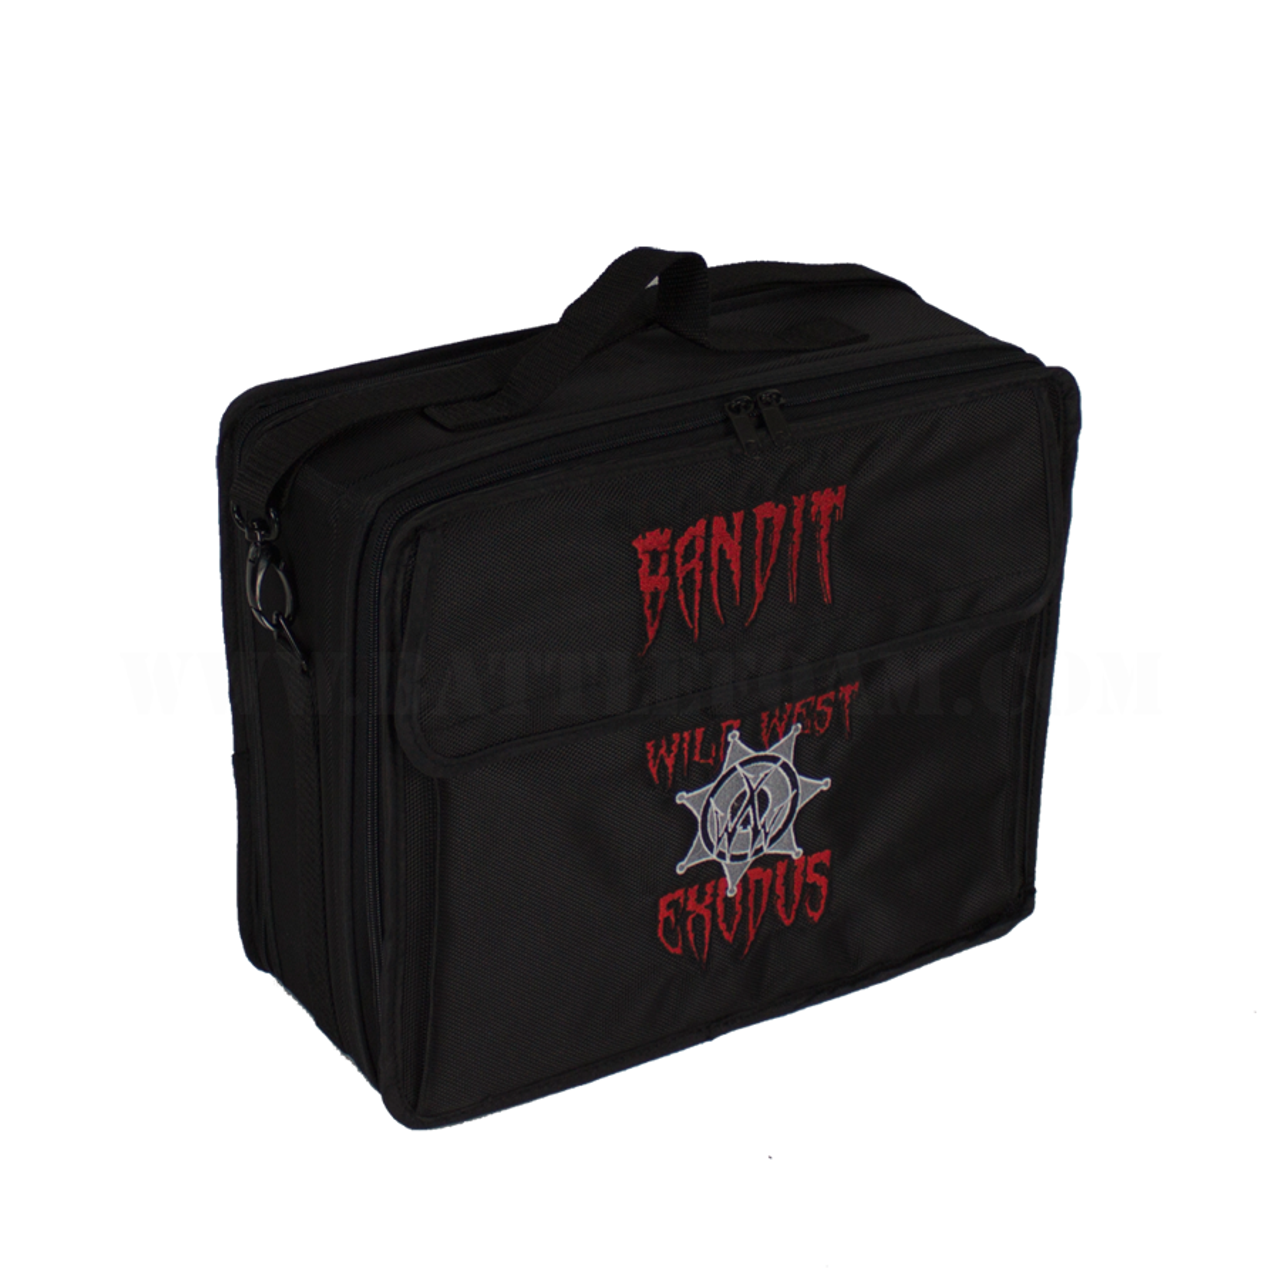 Clearance Wild West Exodus Bandit Bag Standard Load Out Battle Foam Why clearance times on money are transfers taking longer than 48hrs (sb to sb) and longer than 72hrs the clearance process is a security measure. clearance wild west exodus bandit bag standard load out